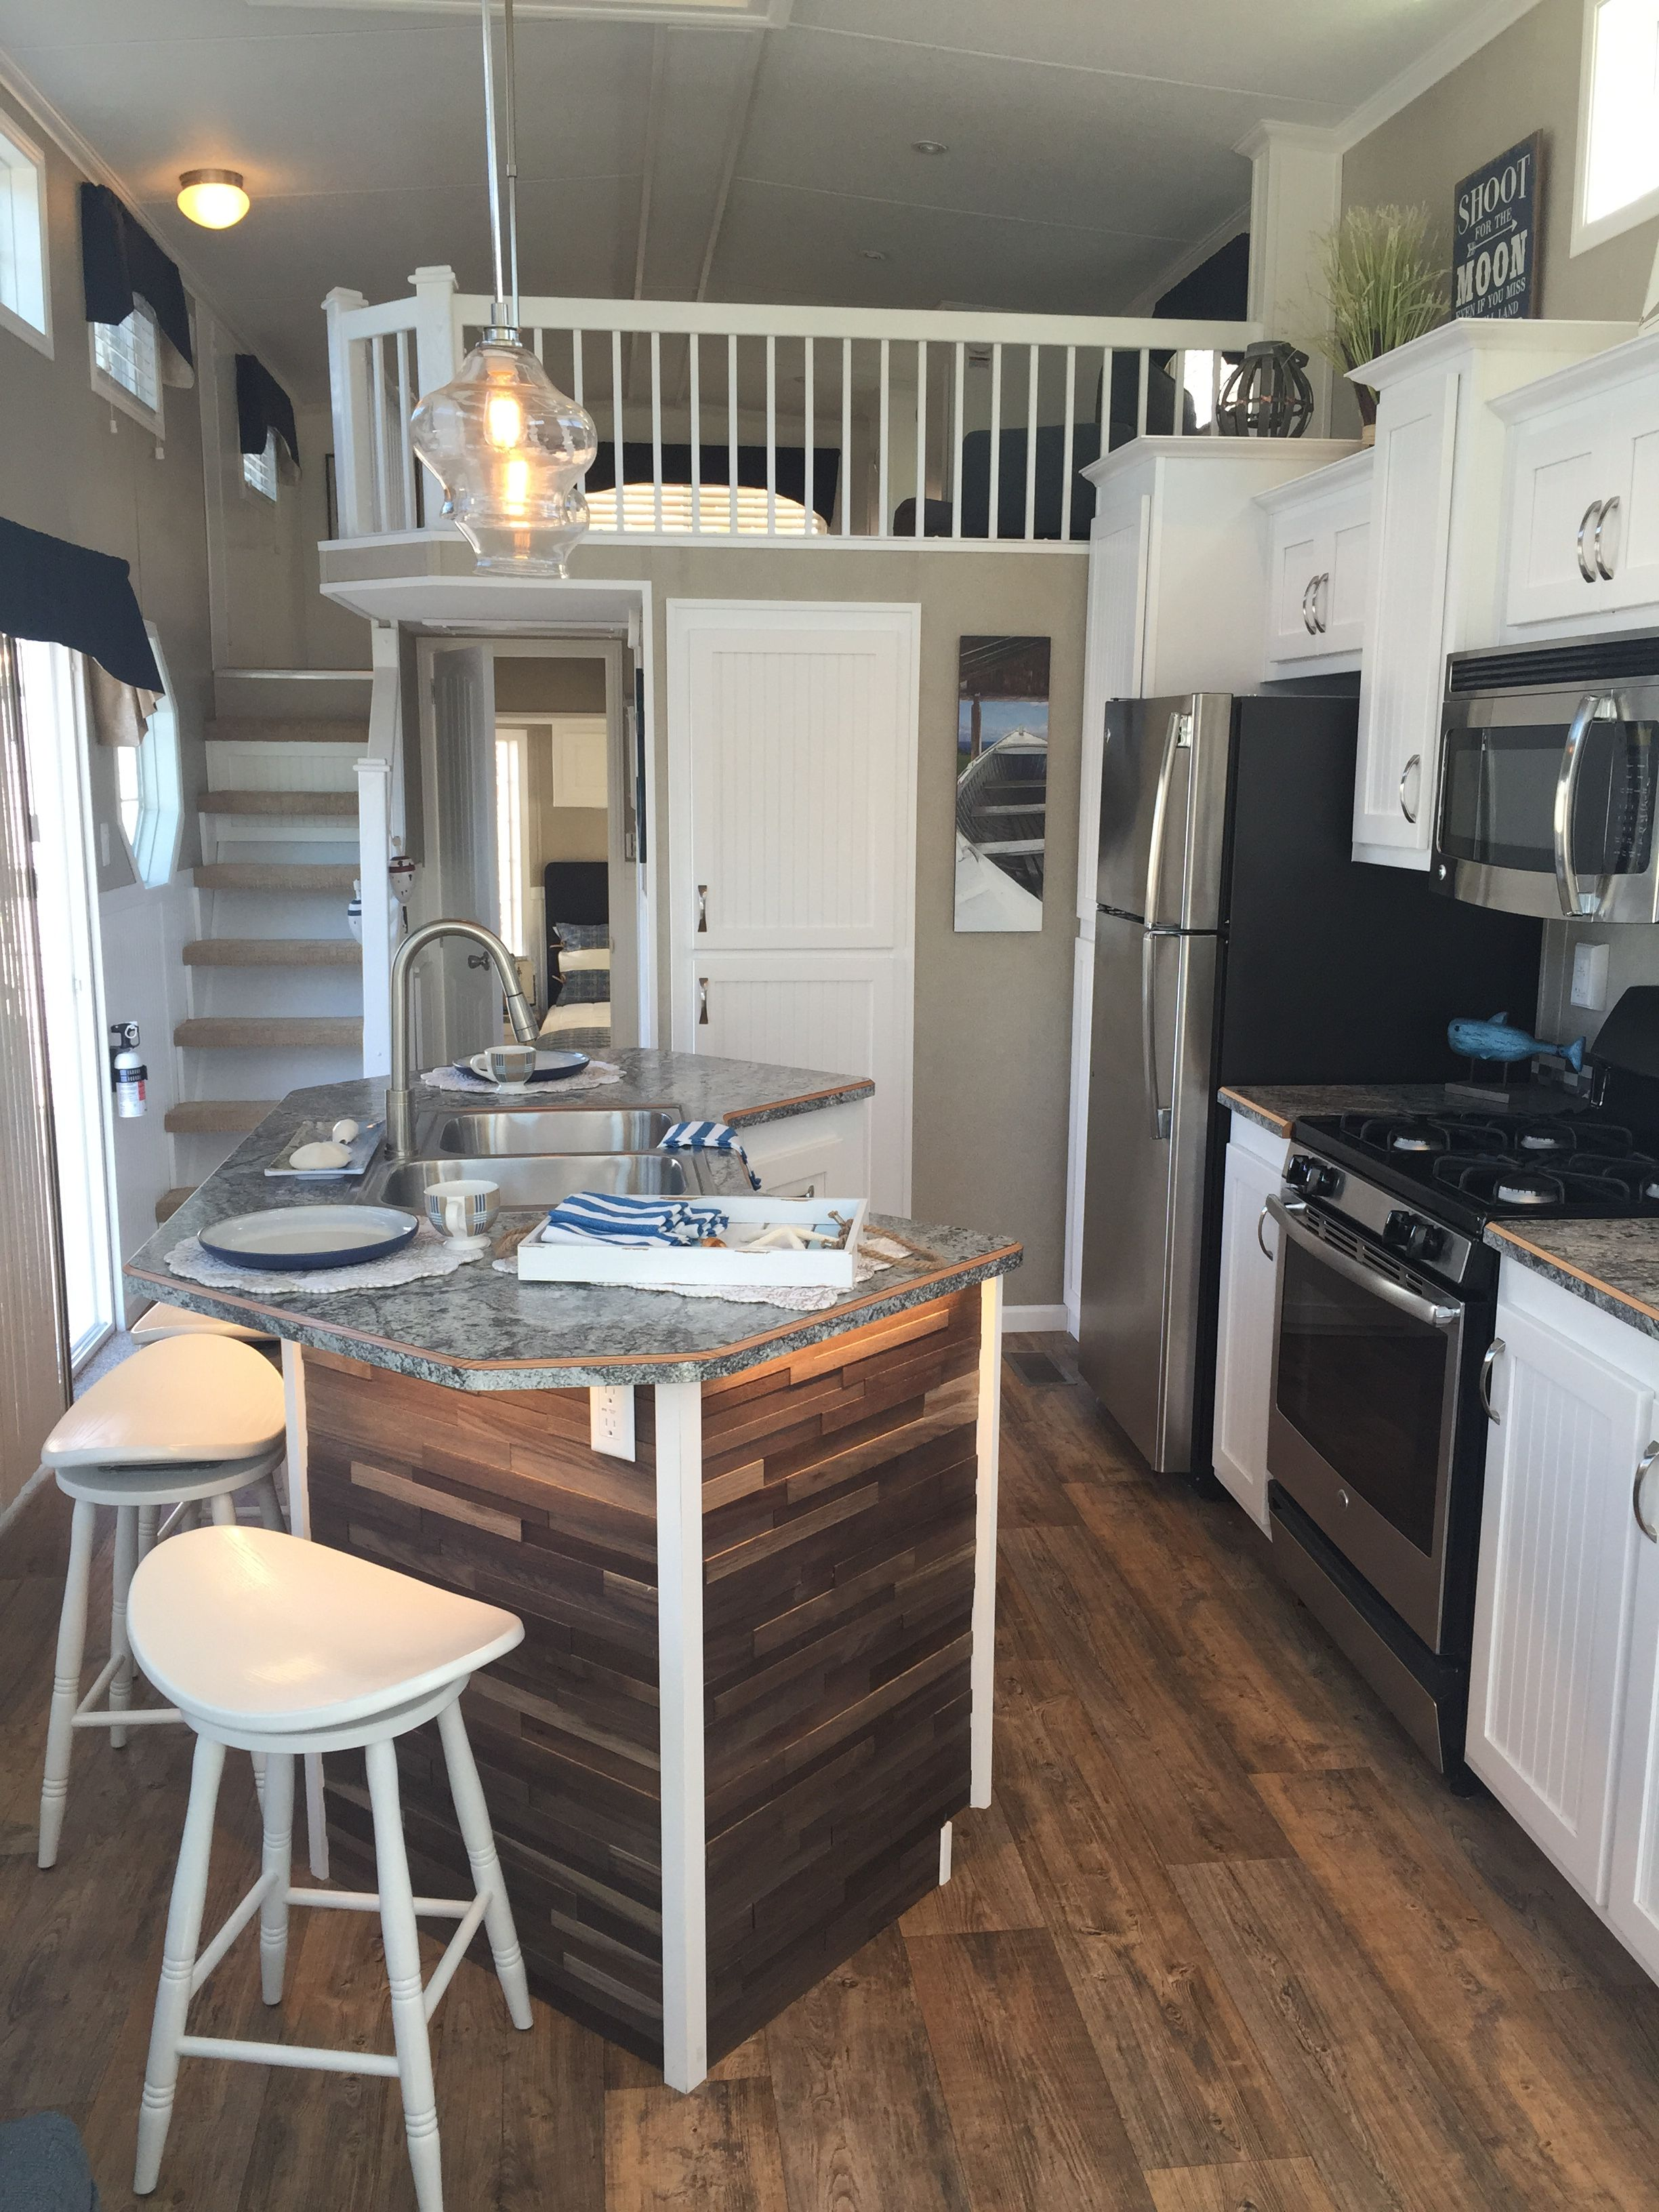 House Design Small House Interior Design Loft: Tiny House Kitchen, Tiny House Interior Design, Modern Tiny House